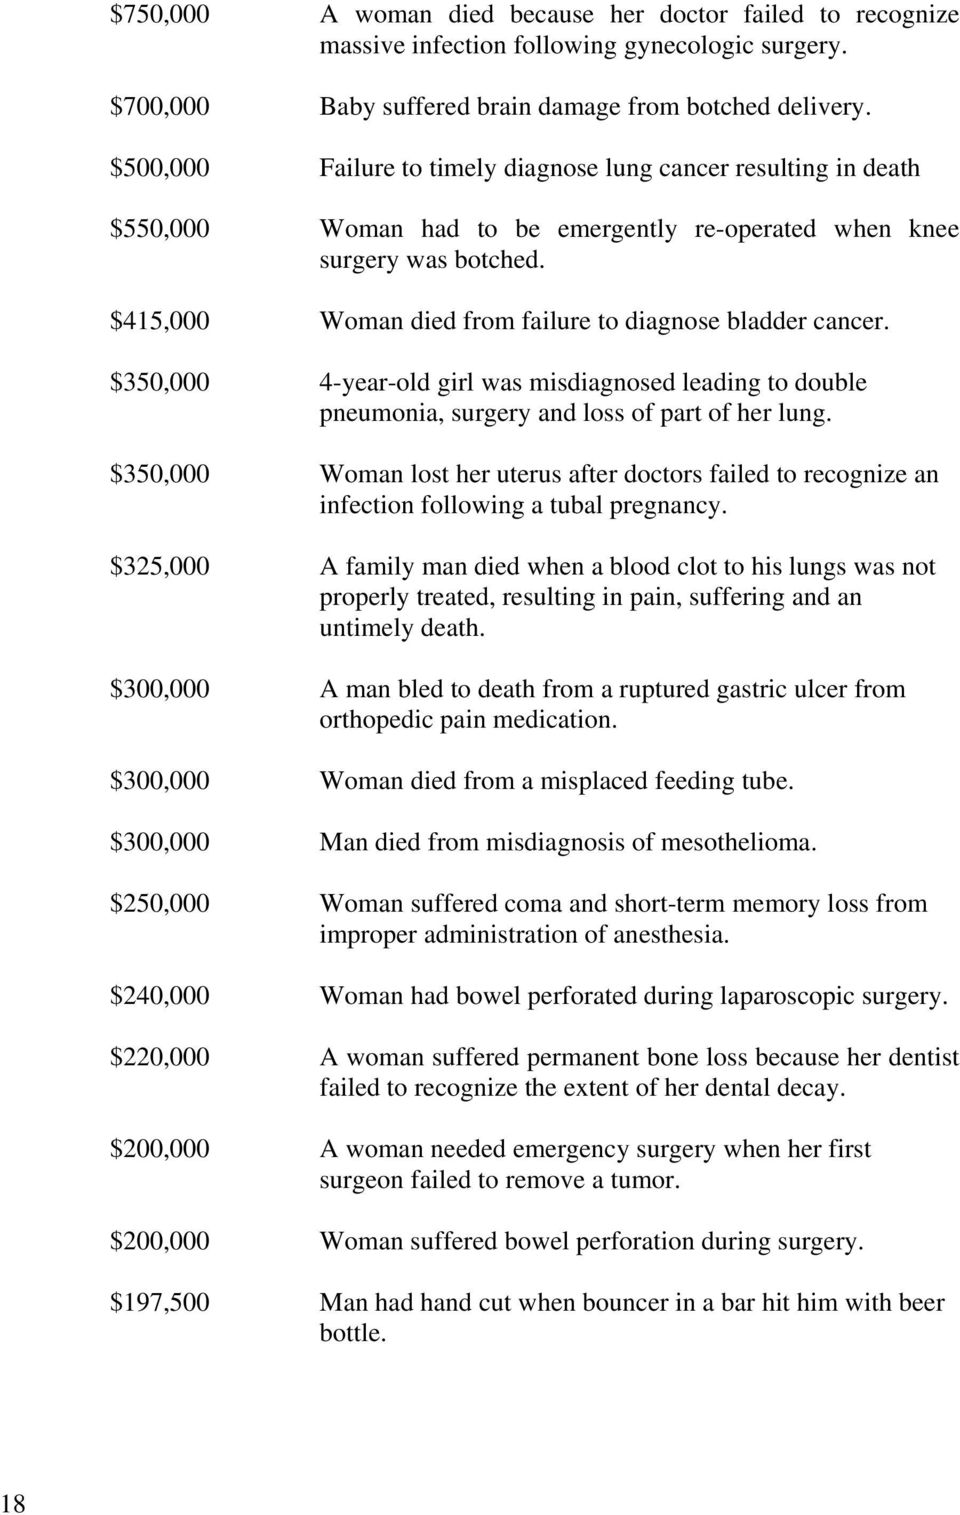 $415,000 Woman died from failure to diagnose bladder cancer. $350,000 4-year-old girl was misdiagnosed leading to double pneumonia, surgery and loss of part of her lung.